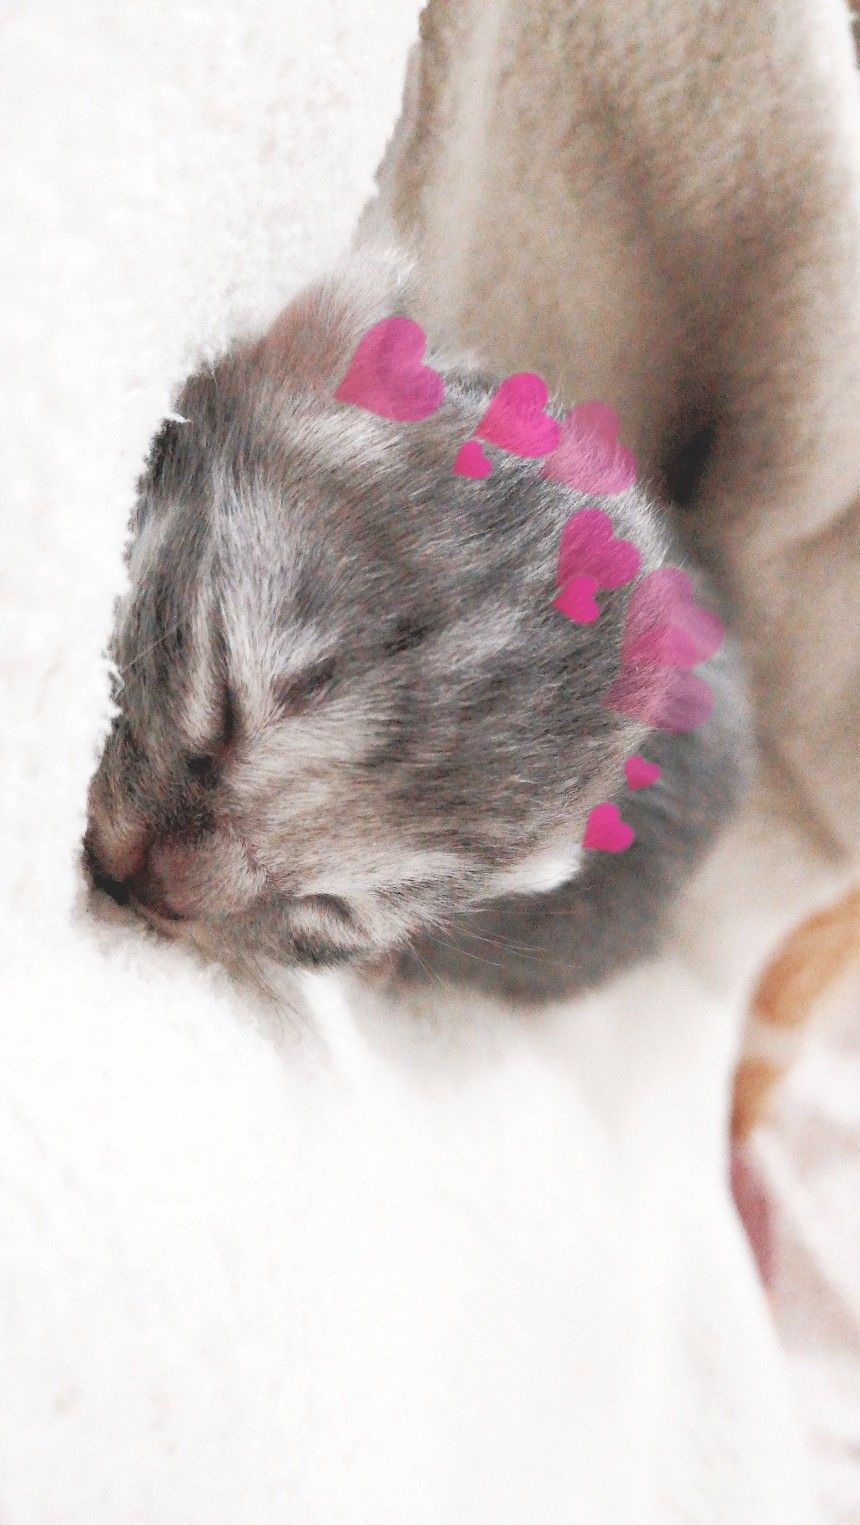 1 Day Old Kitten Kitten Animals Cats